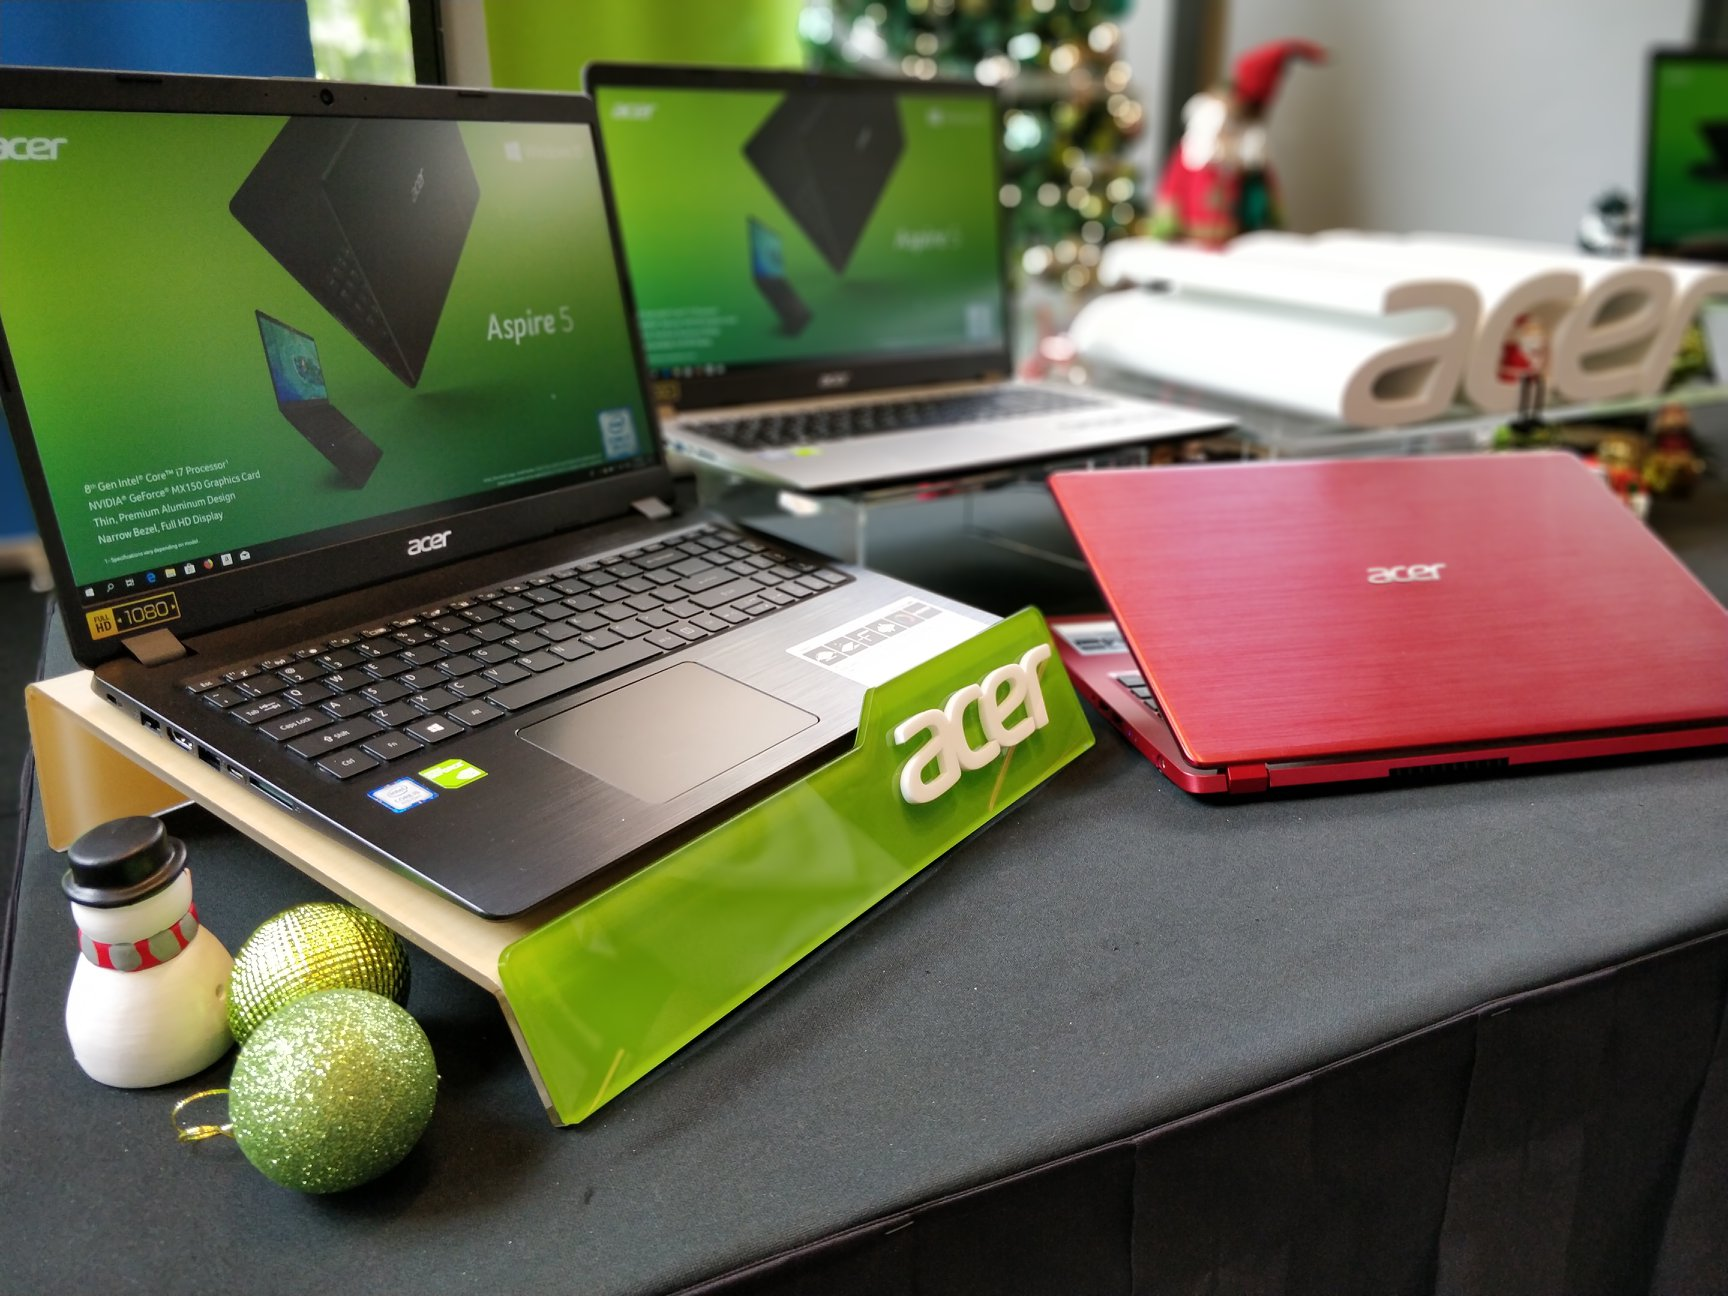 Acer ends 2018 with the 15.6-inch Swift 5 preview and launch of desktop, monitors and laptops 3